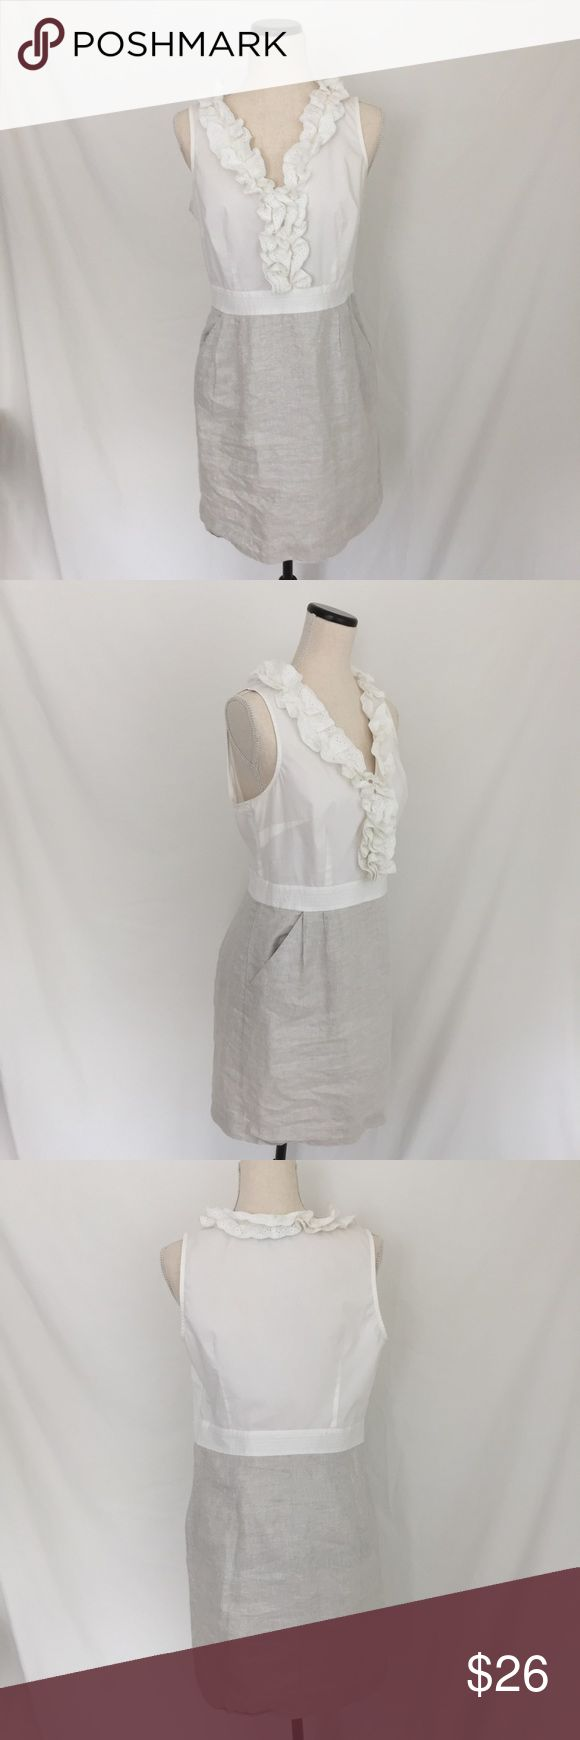 Ann Taylor Loft Dress 12P Lined Silver Thread Sleeveless white ruffled top, side zipper, silver threaded bottom with front pleats & pockets, linen lining on bottom: P107 Ann Taylor Loft Dresses Strapless